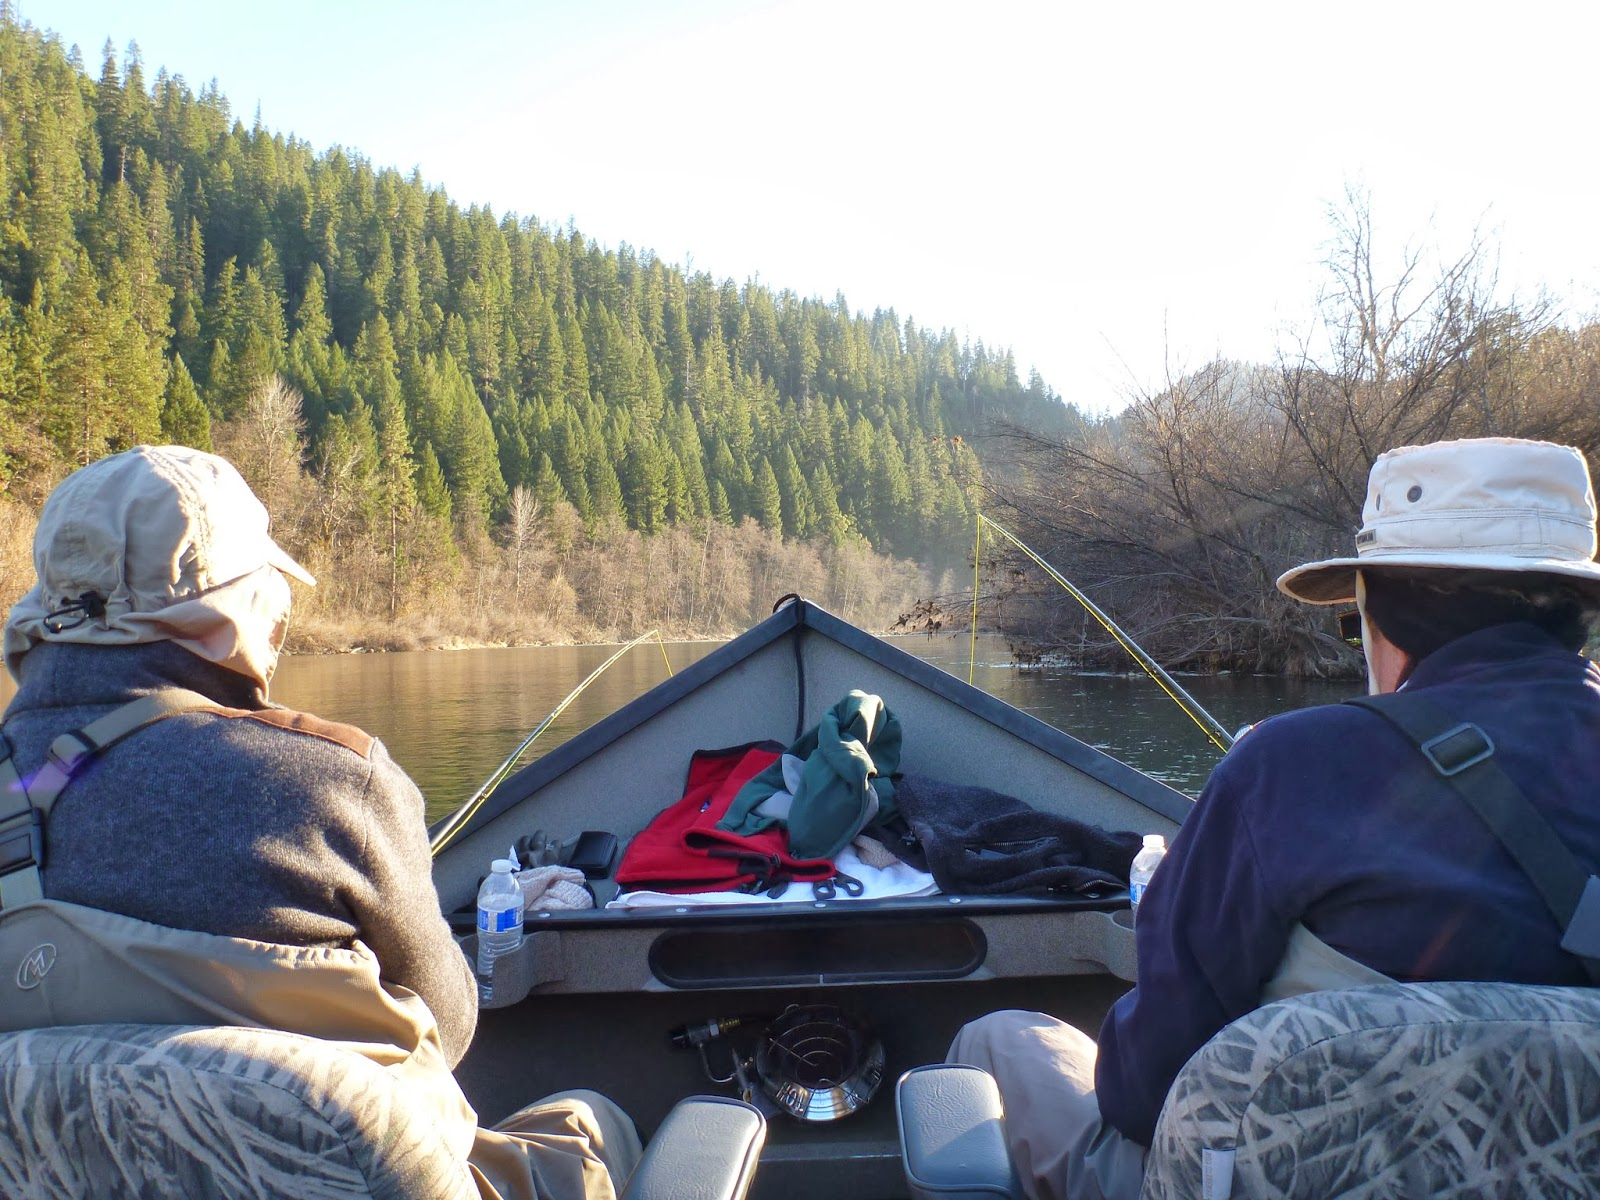 Steelhead fishing on the Klamath River with Ironhead Guide Service.